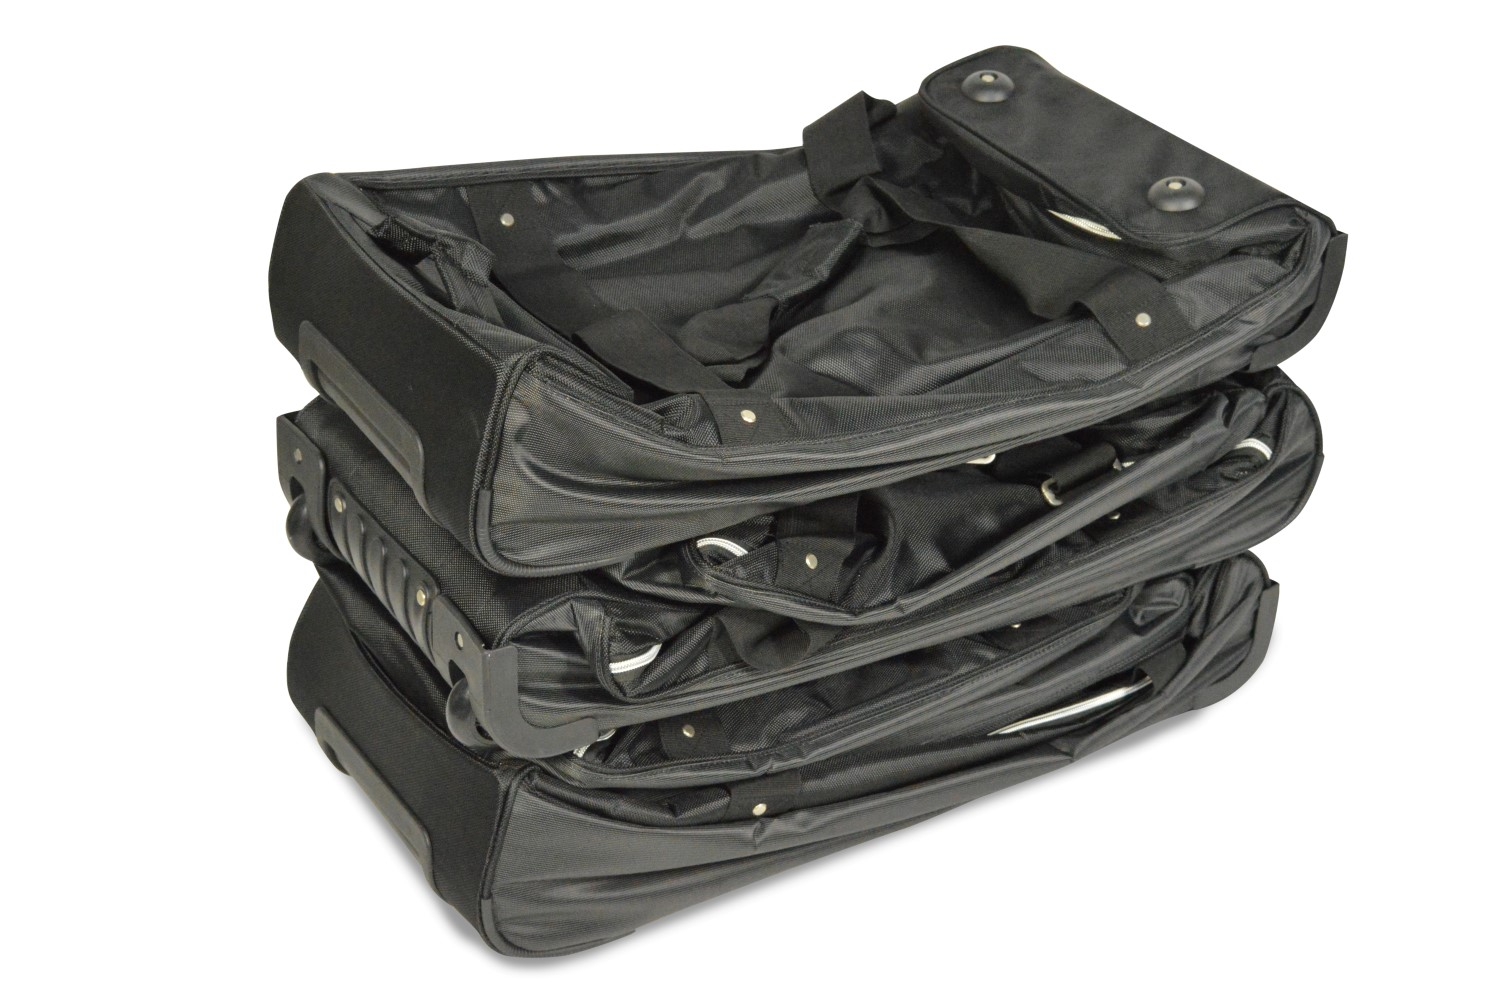 Car-Bags.com travel bag sets are compactly storable